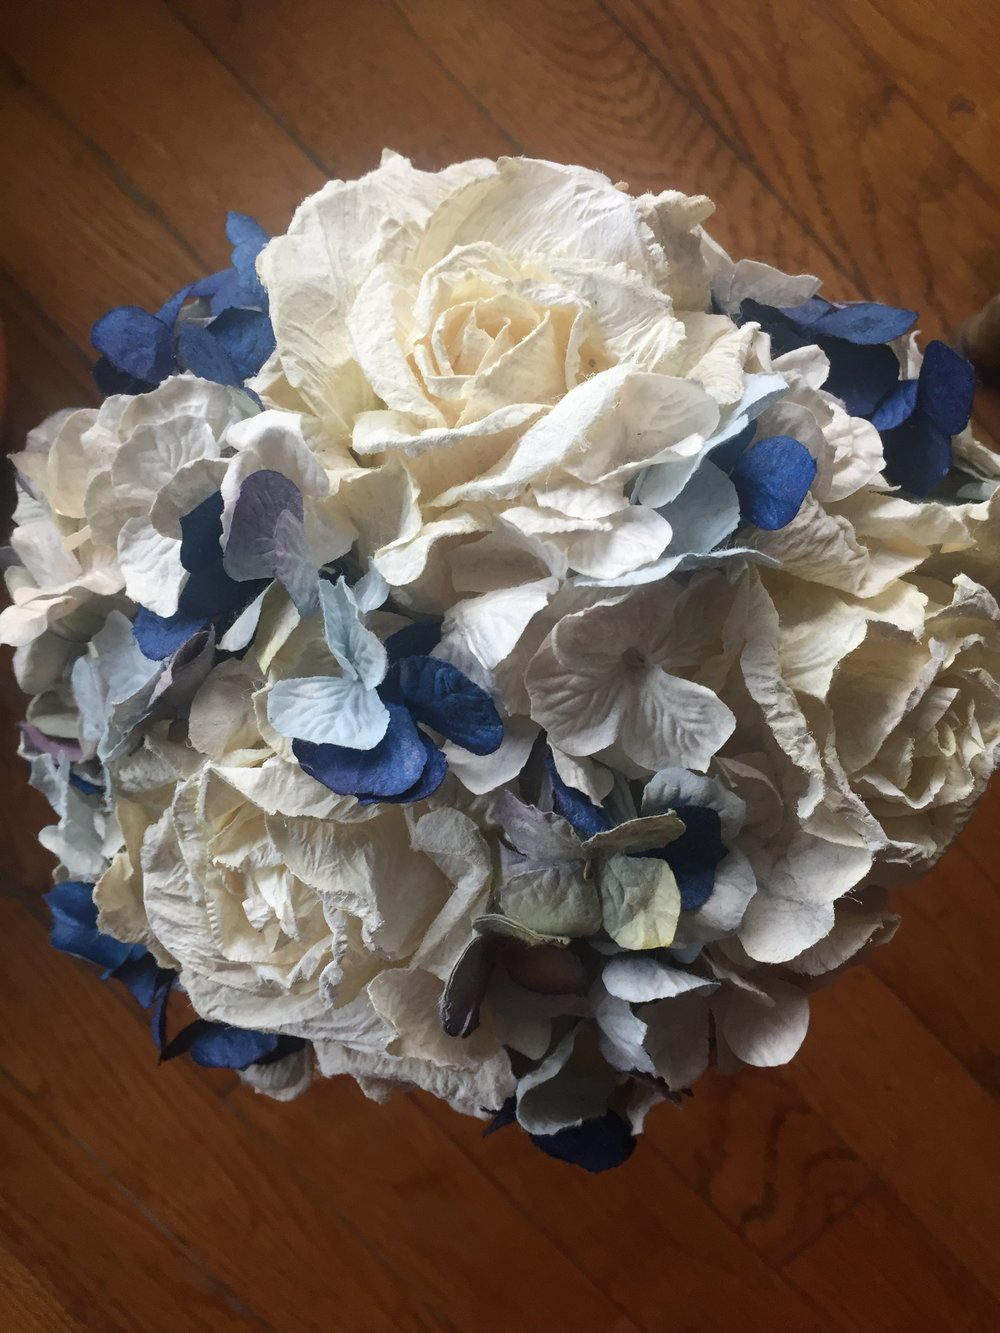 My wedding bouquet 4 years later.  Still looks good right?